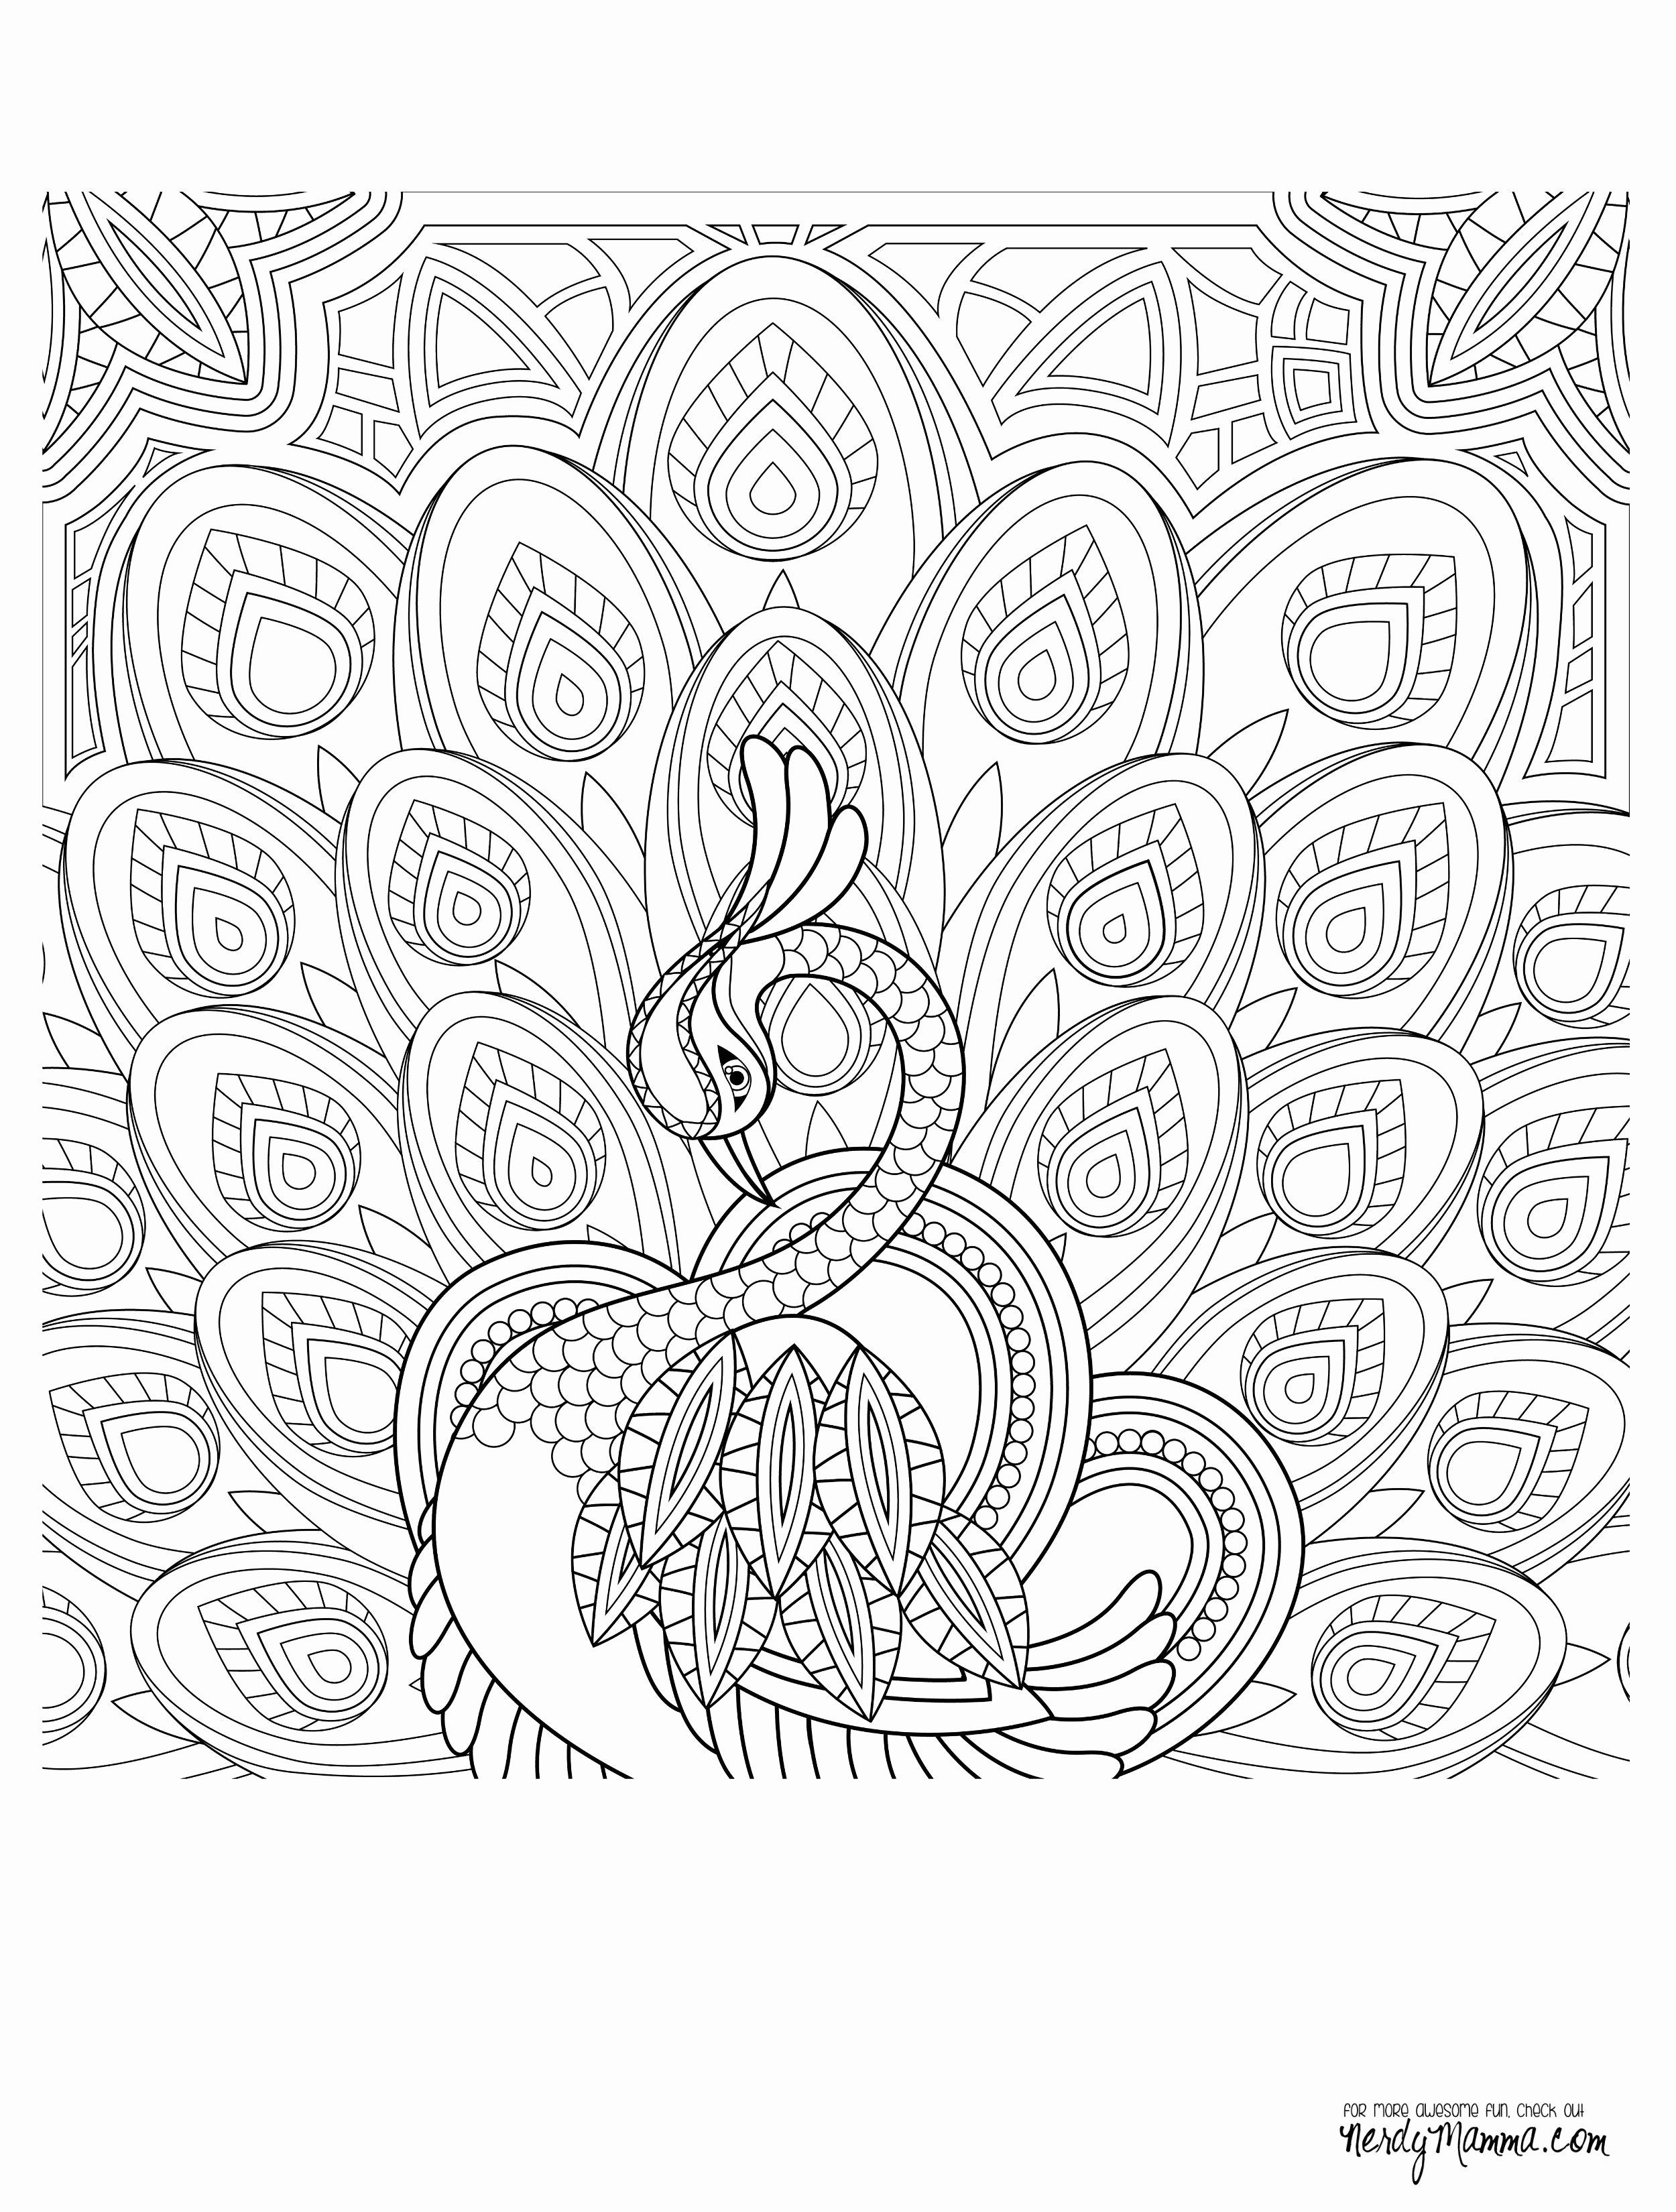 Mystery Of History Coloring Pages  Collection 9l - Free For Children